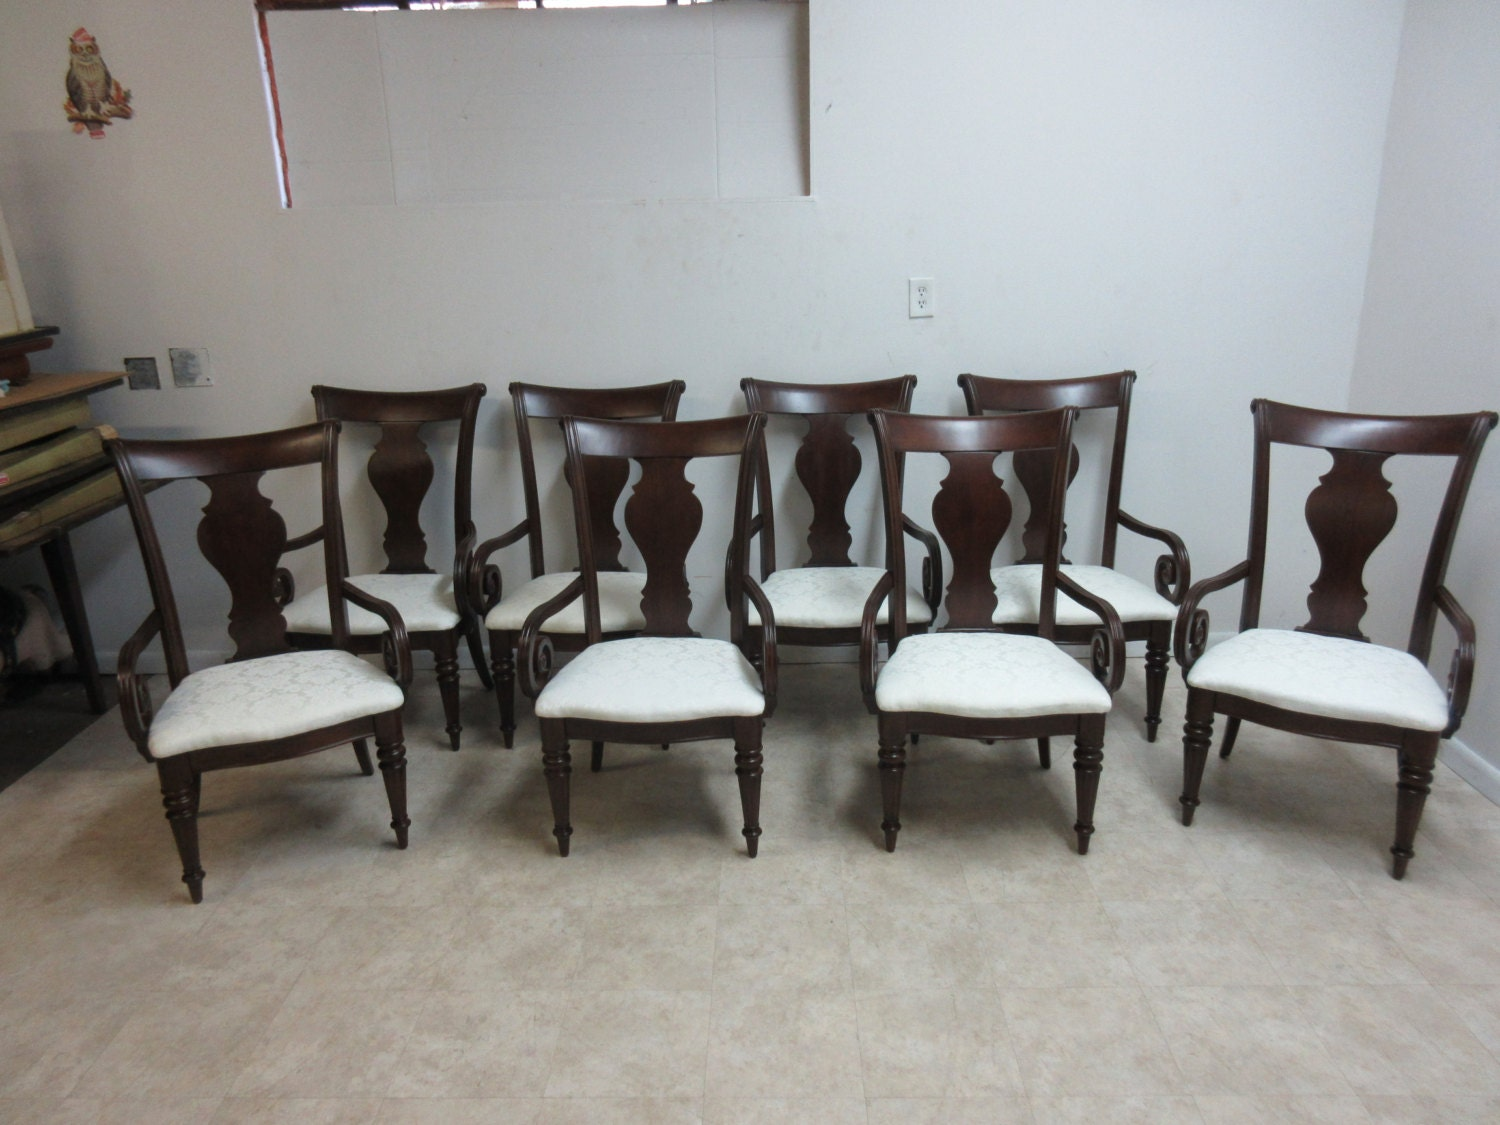 pennsylvania house cherry dining room furniture | Set of 8 Pennsylvania House Cherry Cortland Manor Dining ...